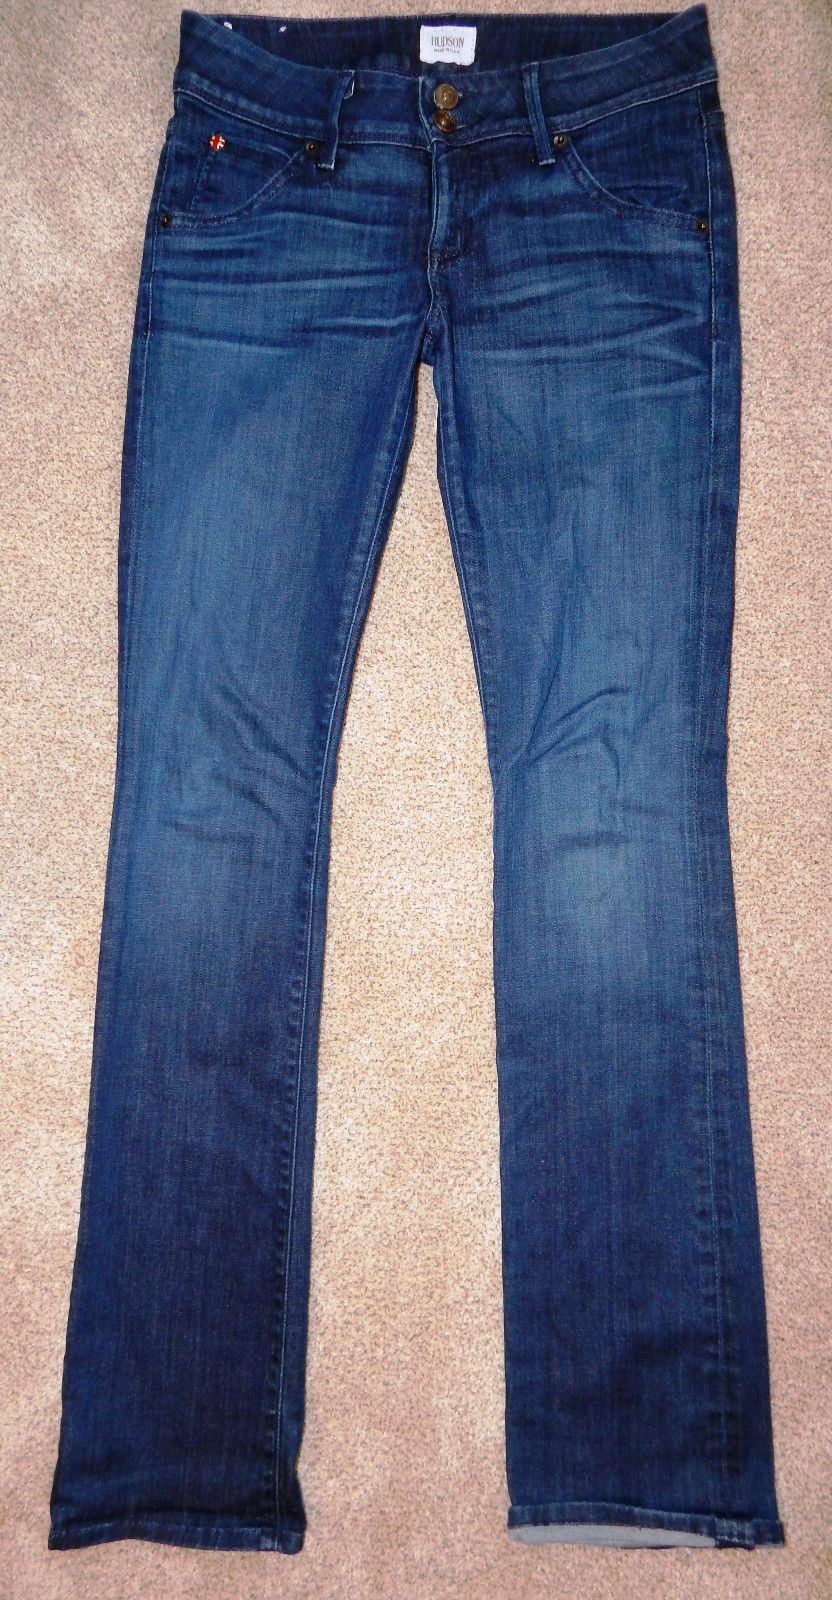 Hudson jeans beth baby boot cut denim jeans dark wash size 26 2 FREE SHIPPING